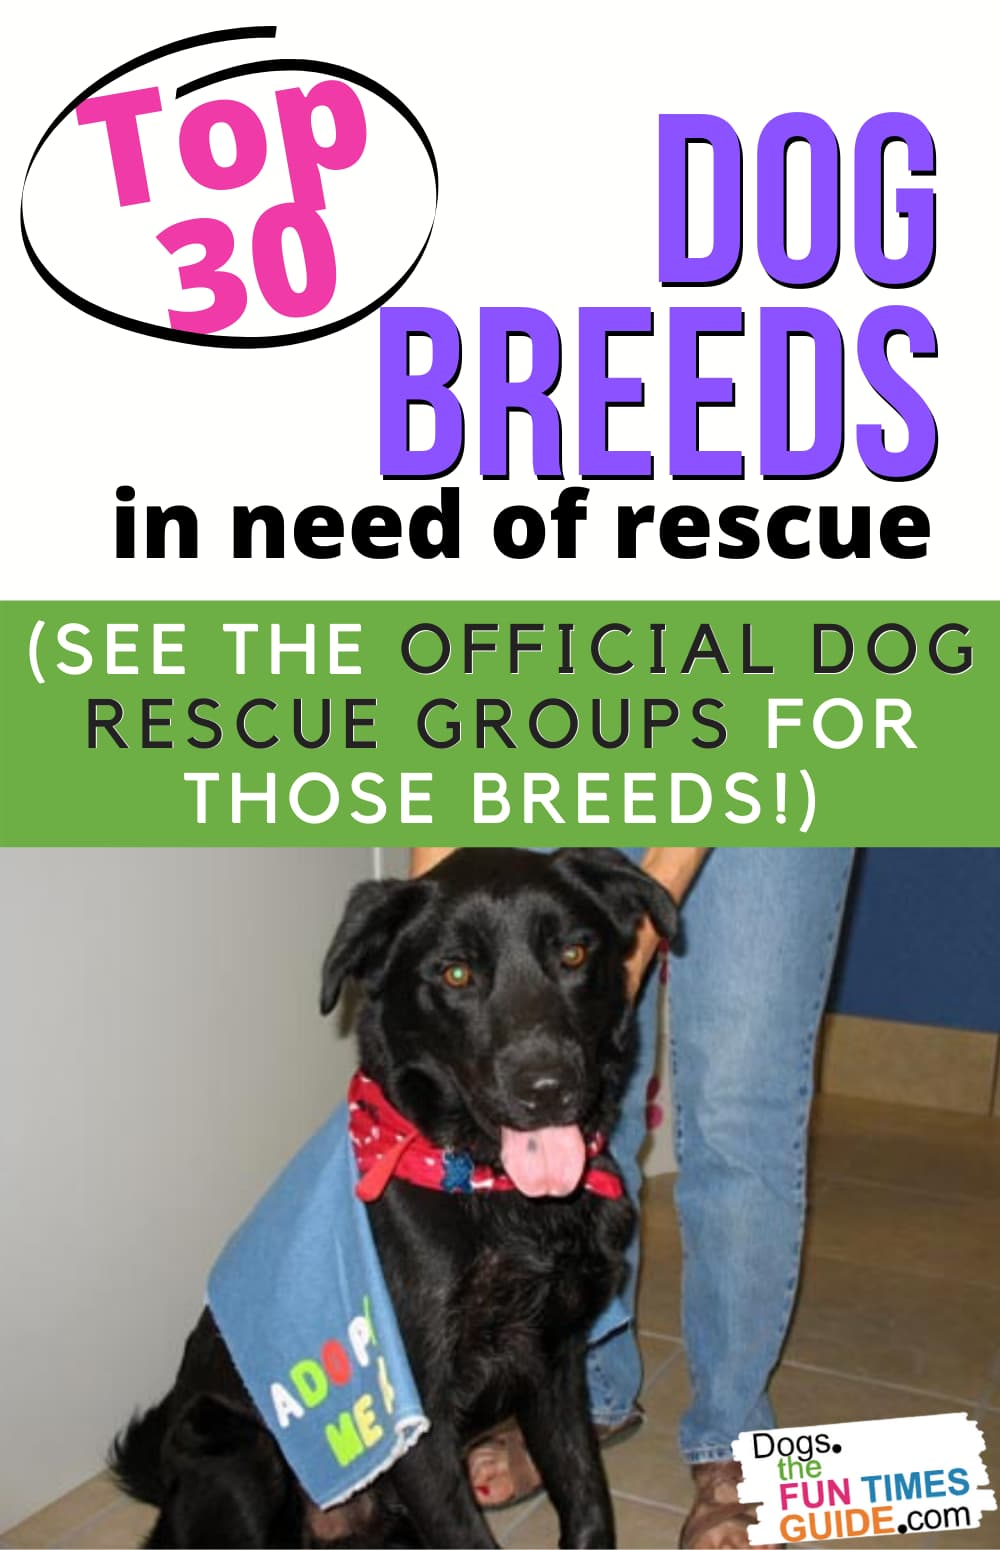 Rescue Dogs: The Top 30 Dog Breeds In Need Of Rescue In America... And The Official Dog Rescue Groups For Those Breeds